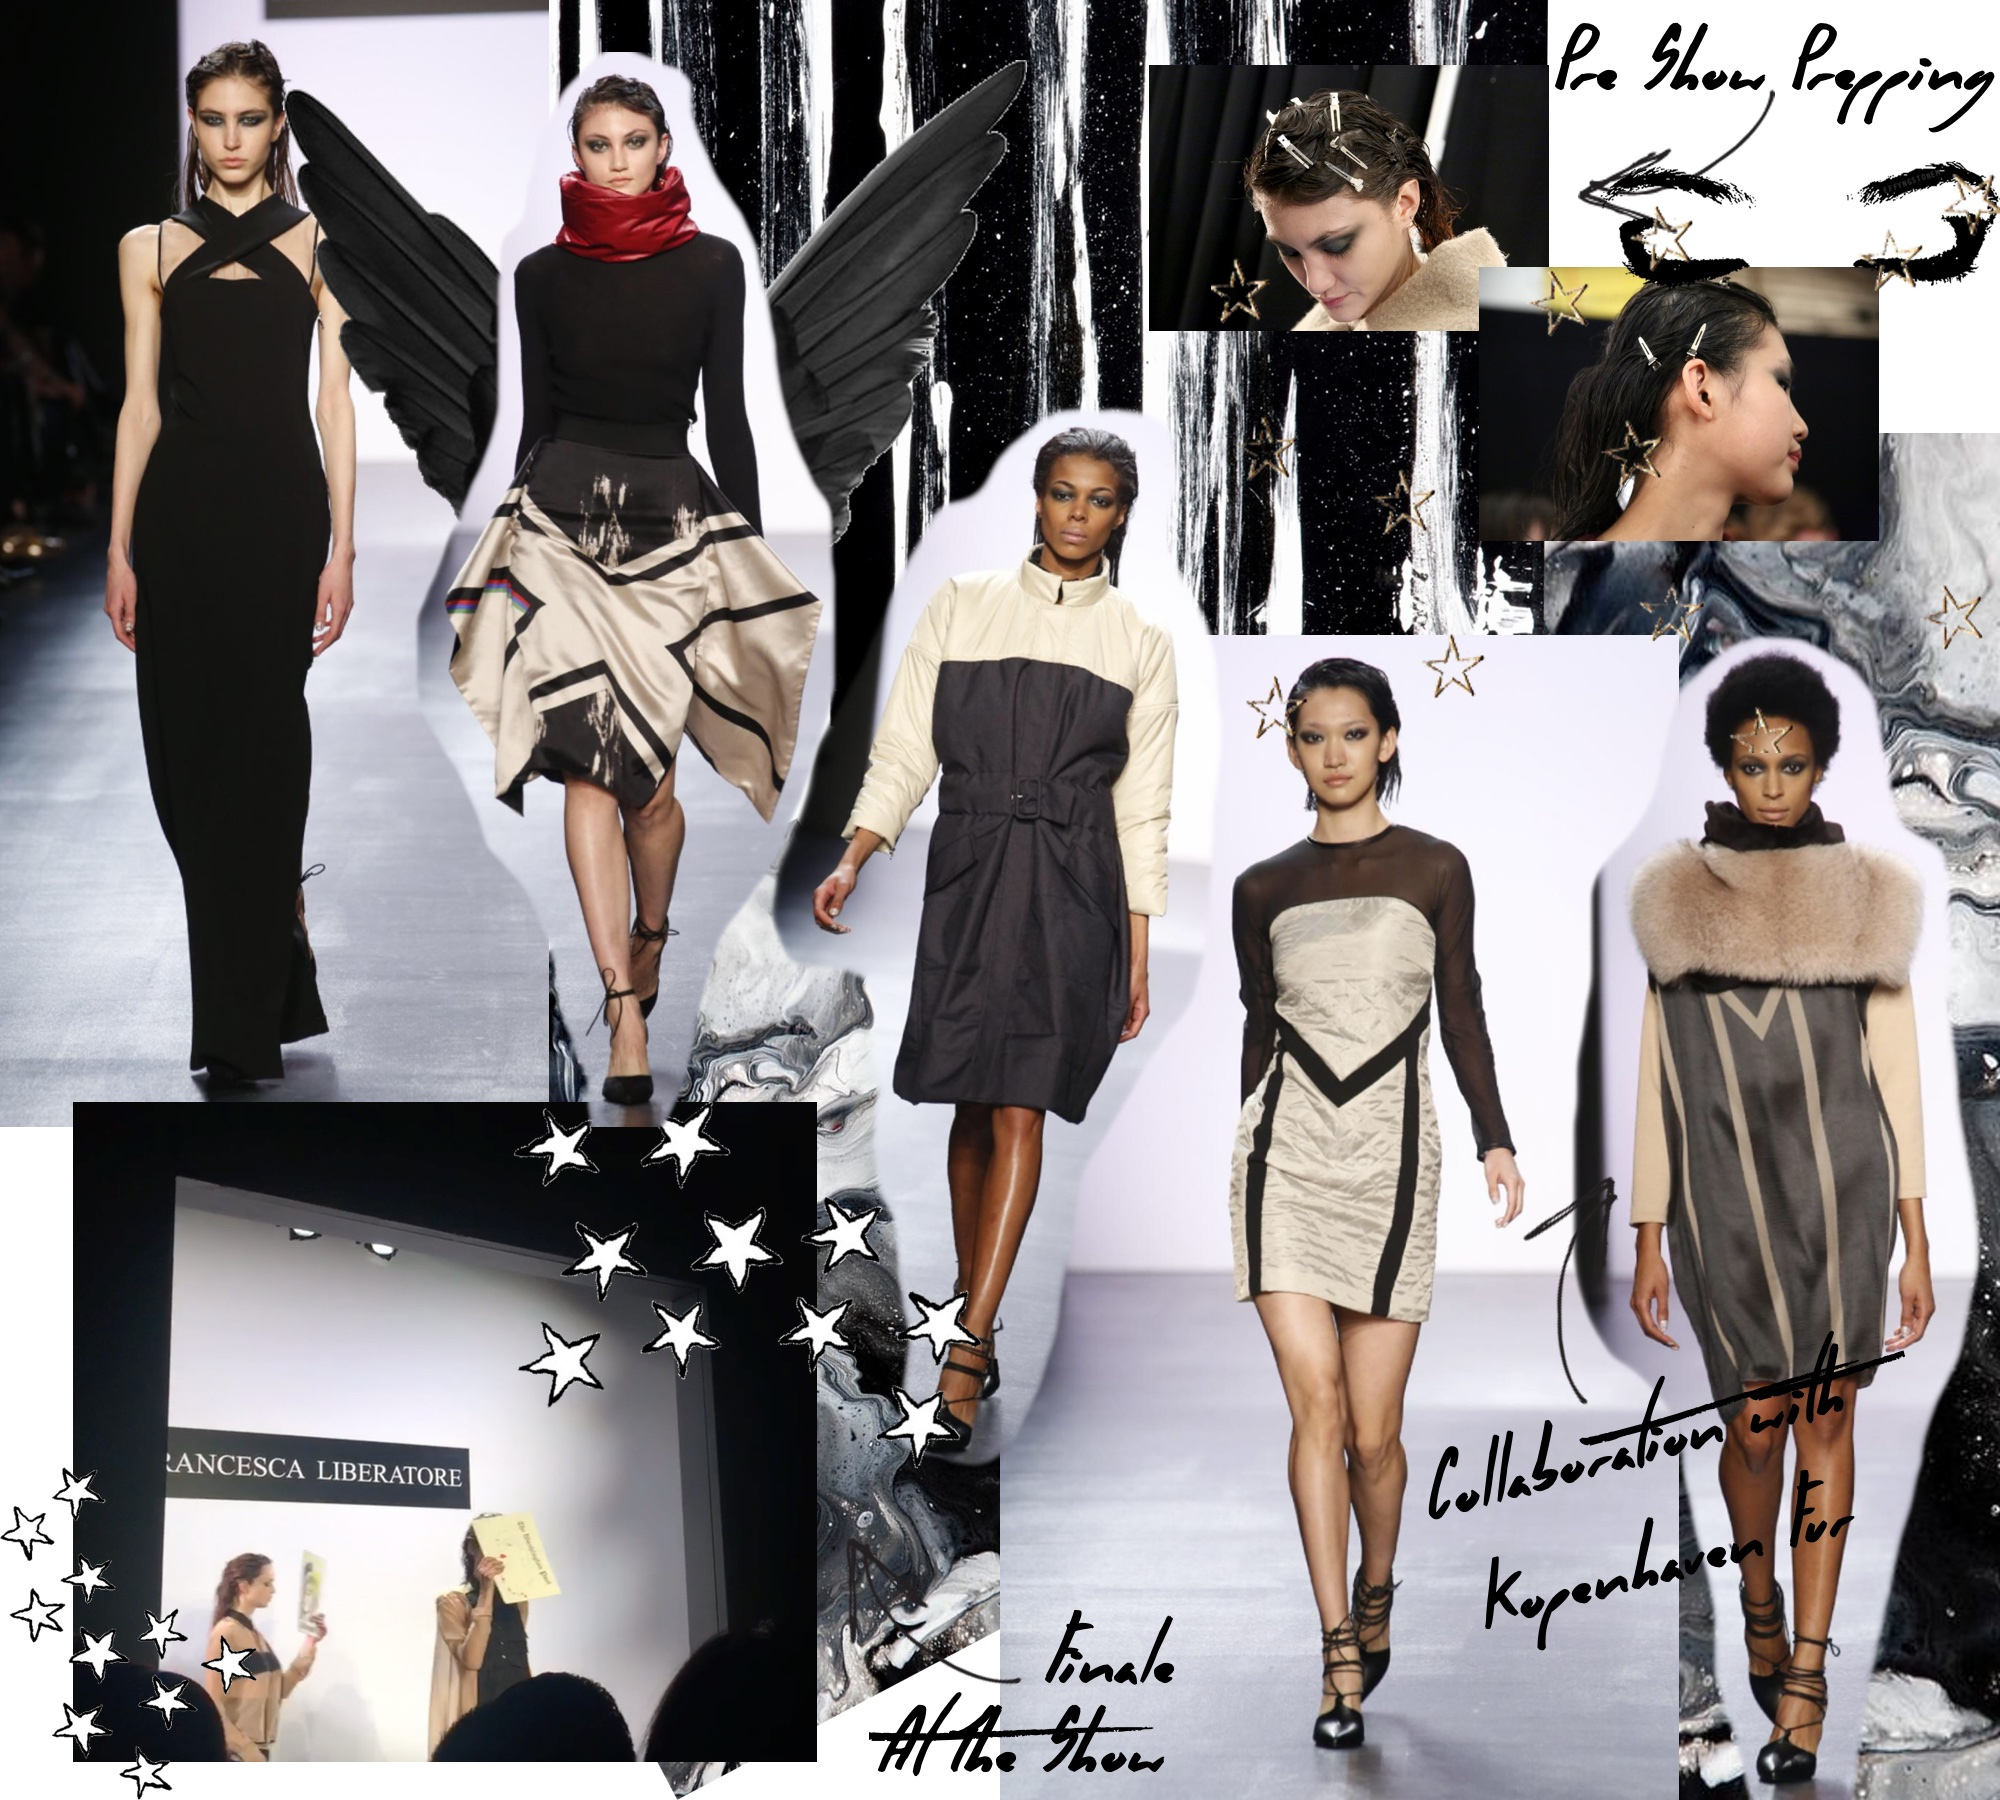 Francesca Liberatore Fall 2016 Runway Show New York Fashion Week: To Style, With Love